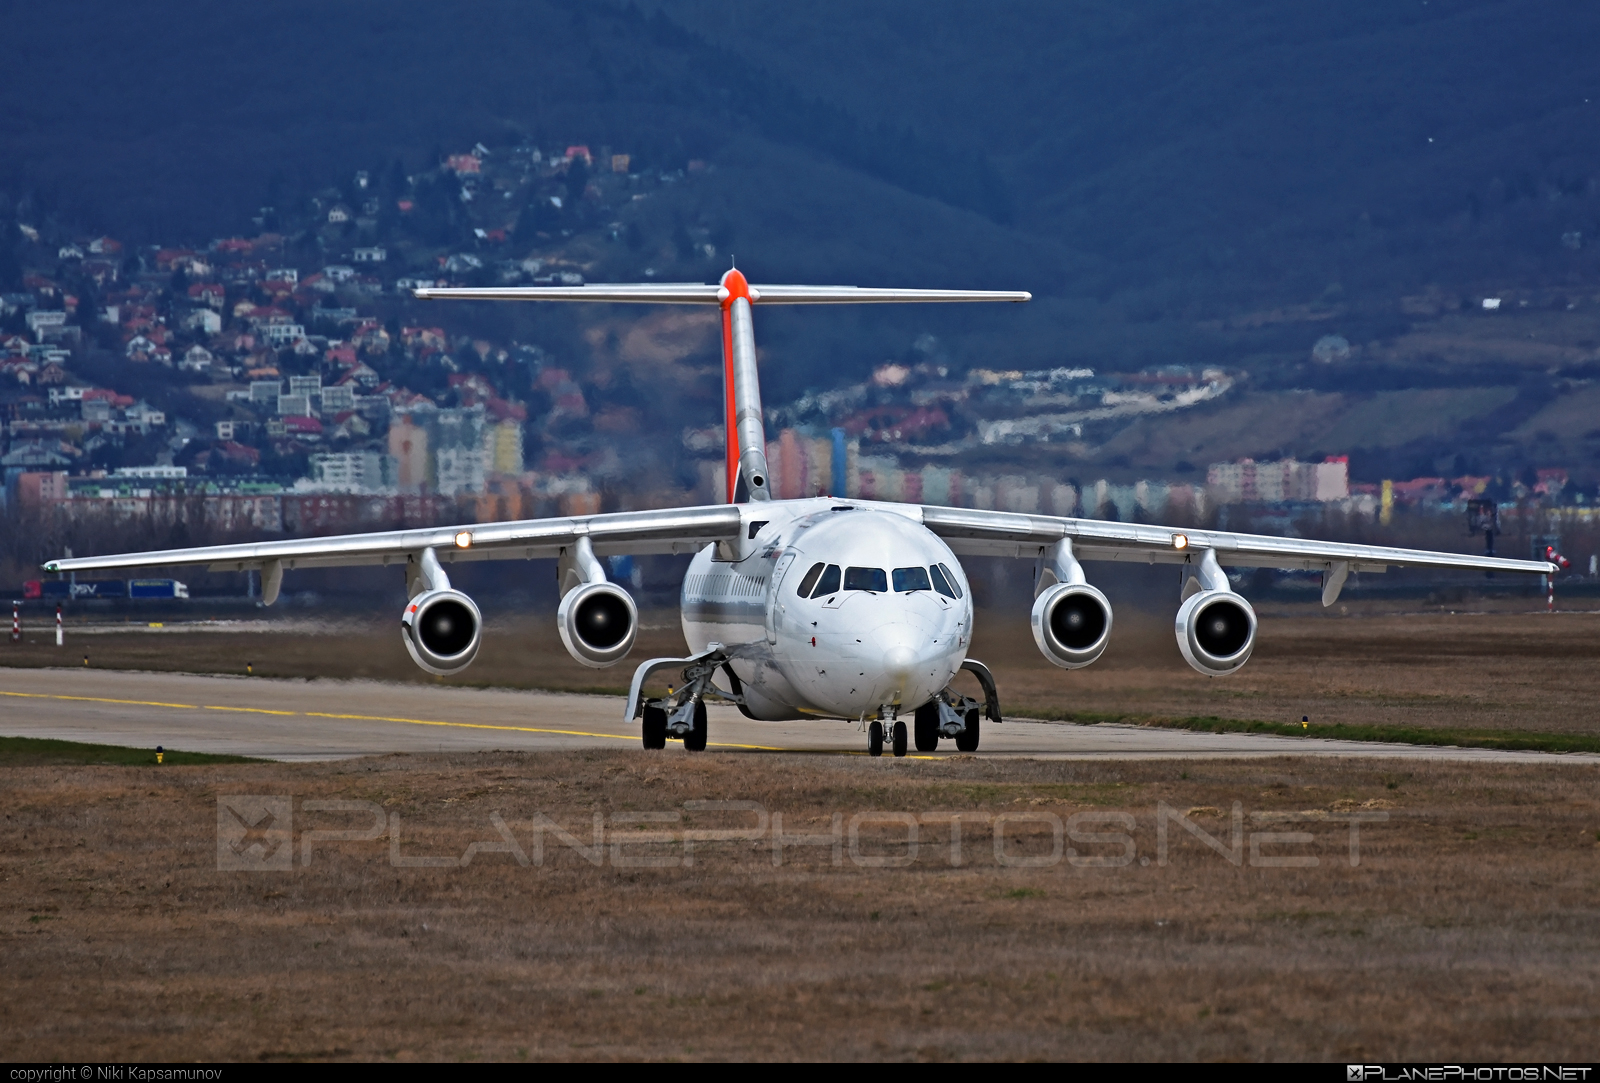 British Aerospace Avro RJ100 - G-JOTS operated by Jota Aviation #avro146rj100 #avrorj100 #bae146 #britishaerospace